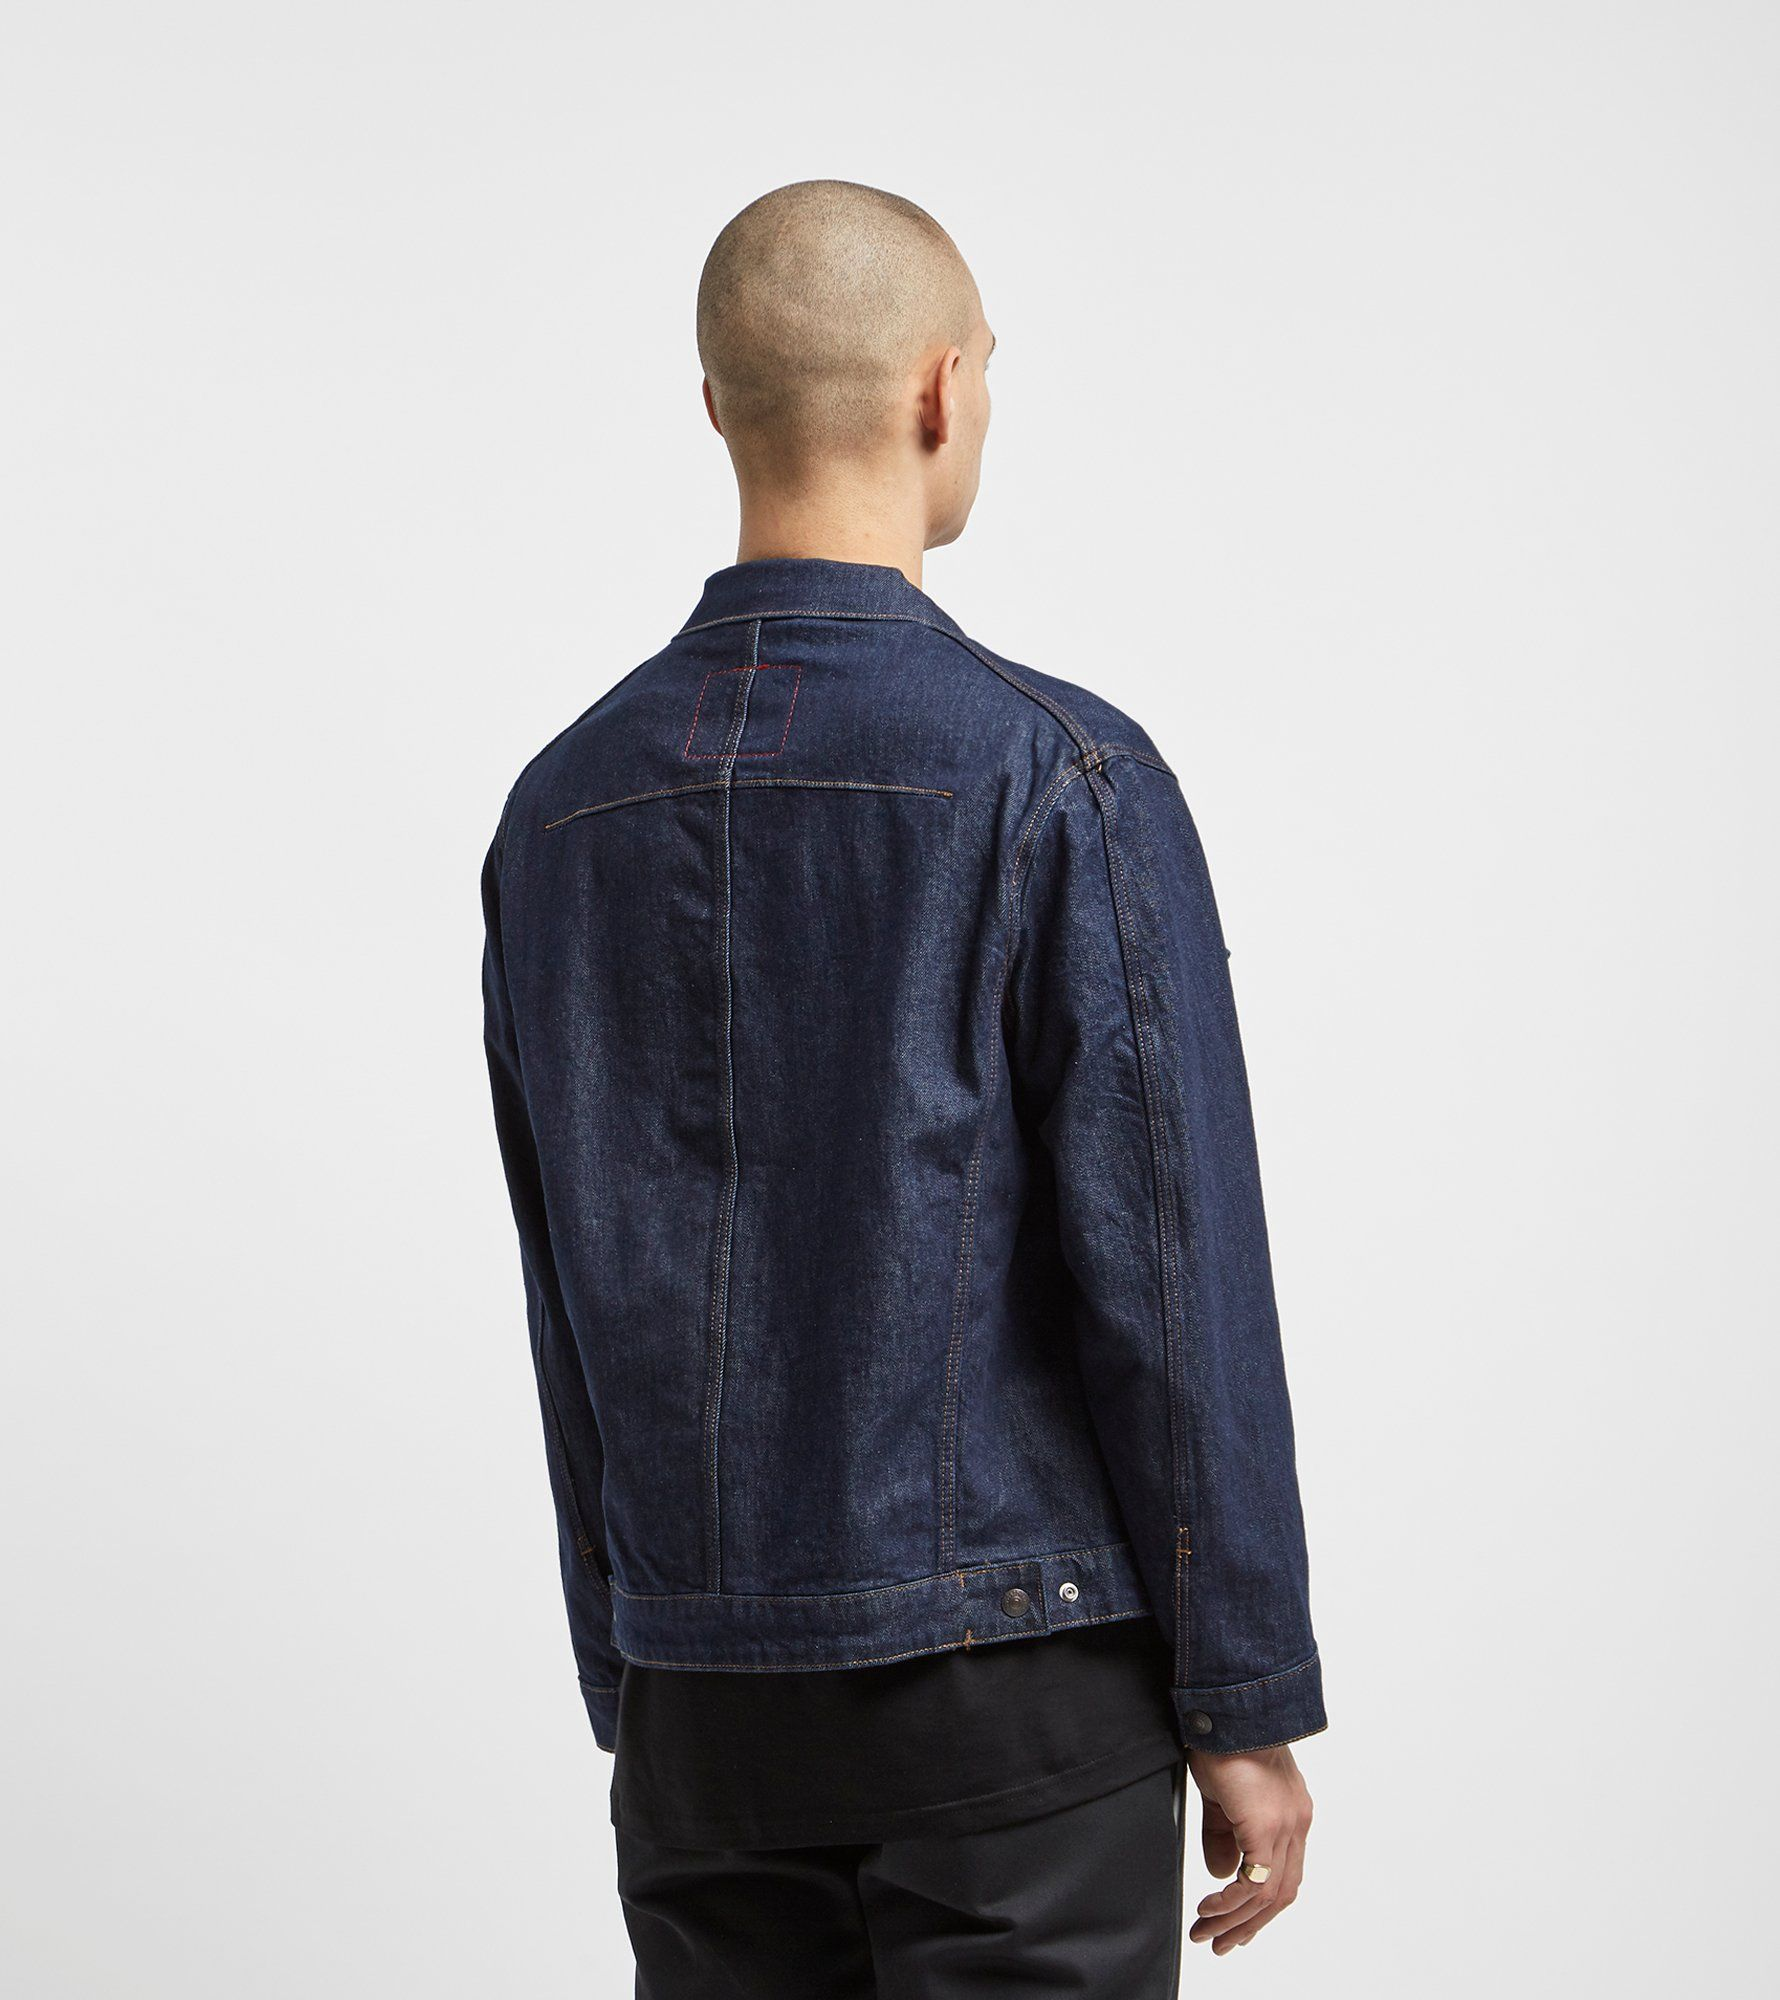 Levis Engineered Jeans Trucker Jacket